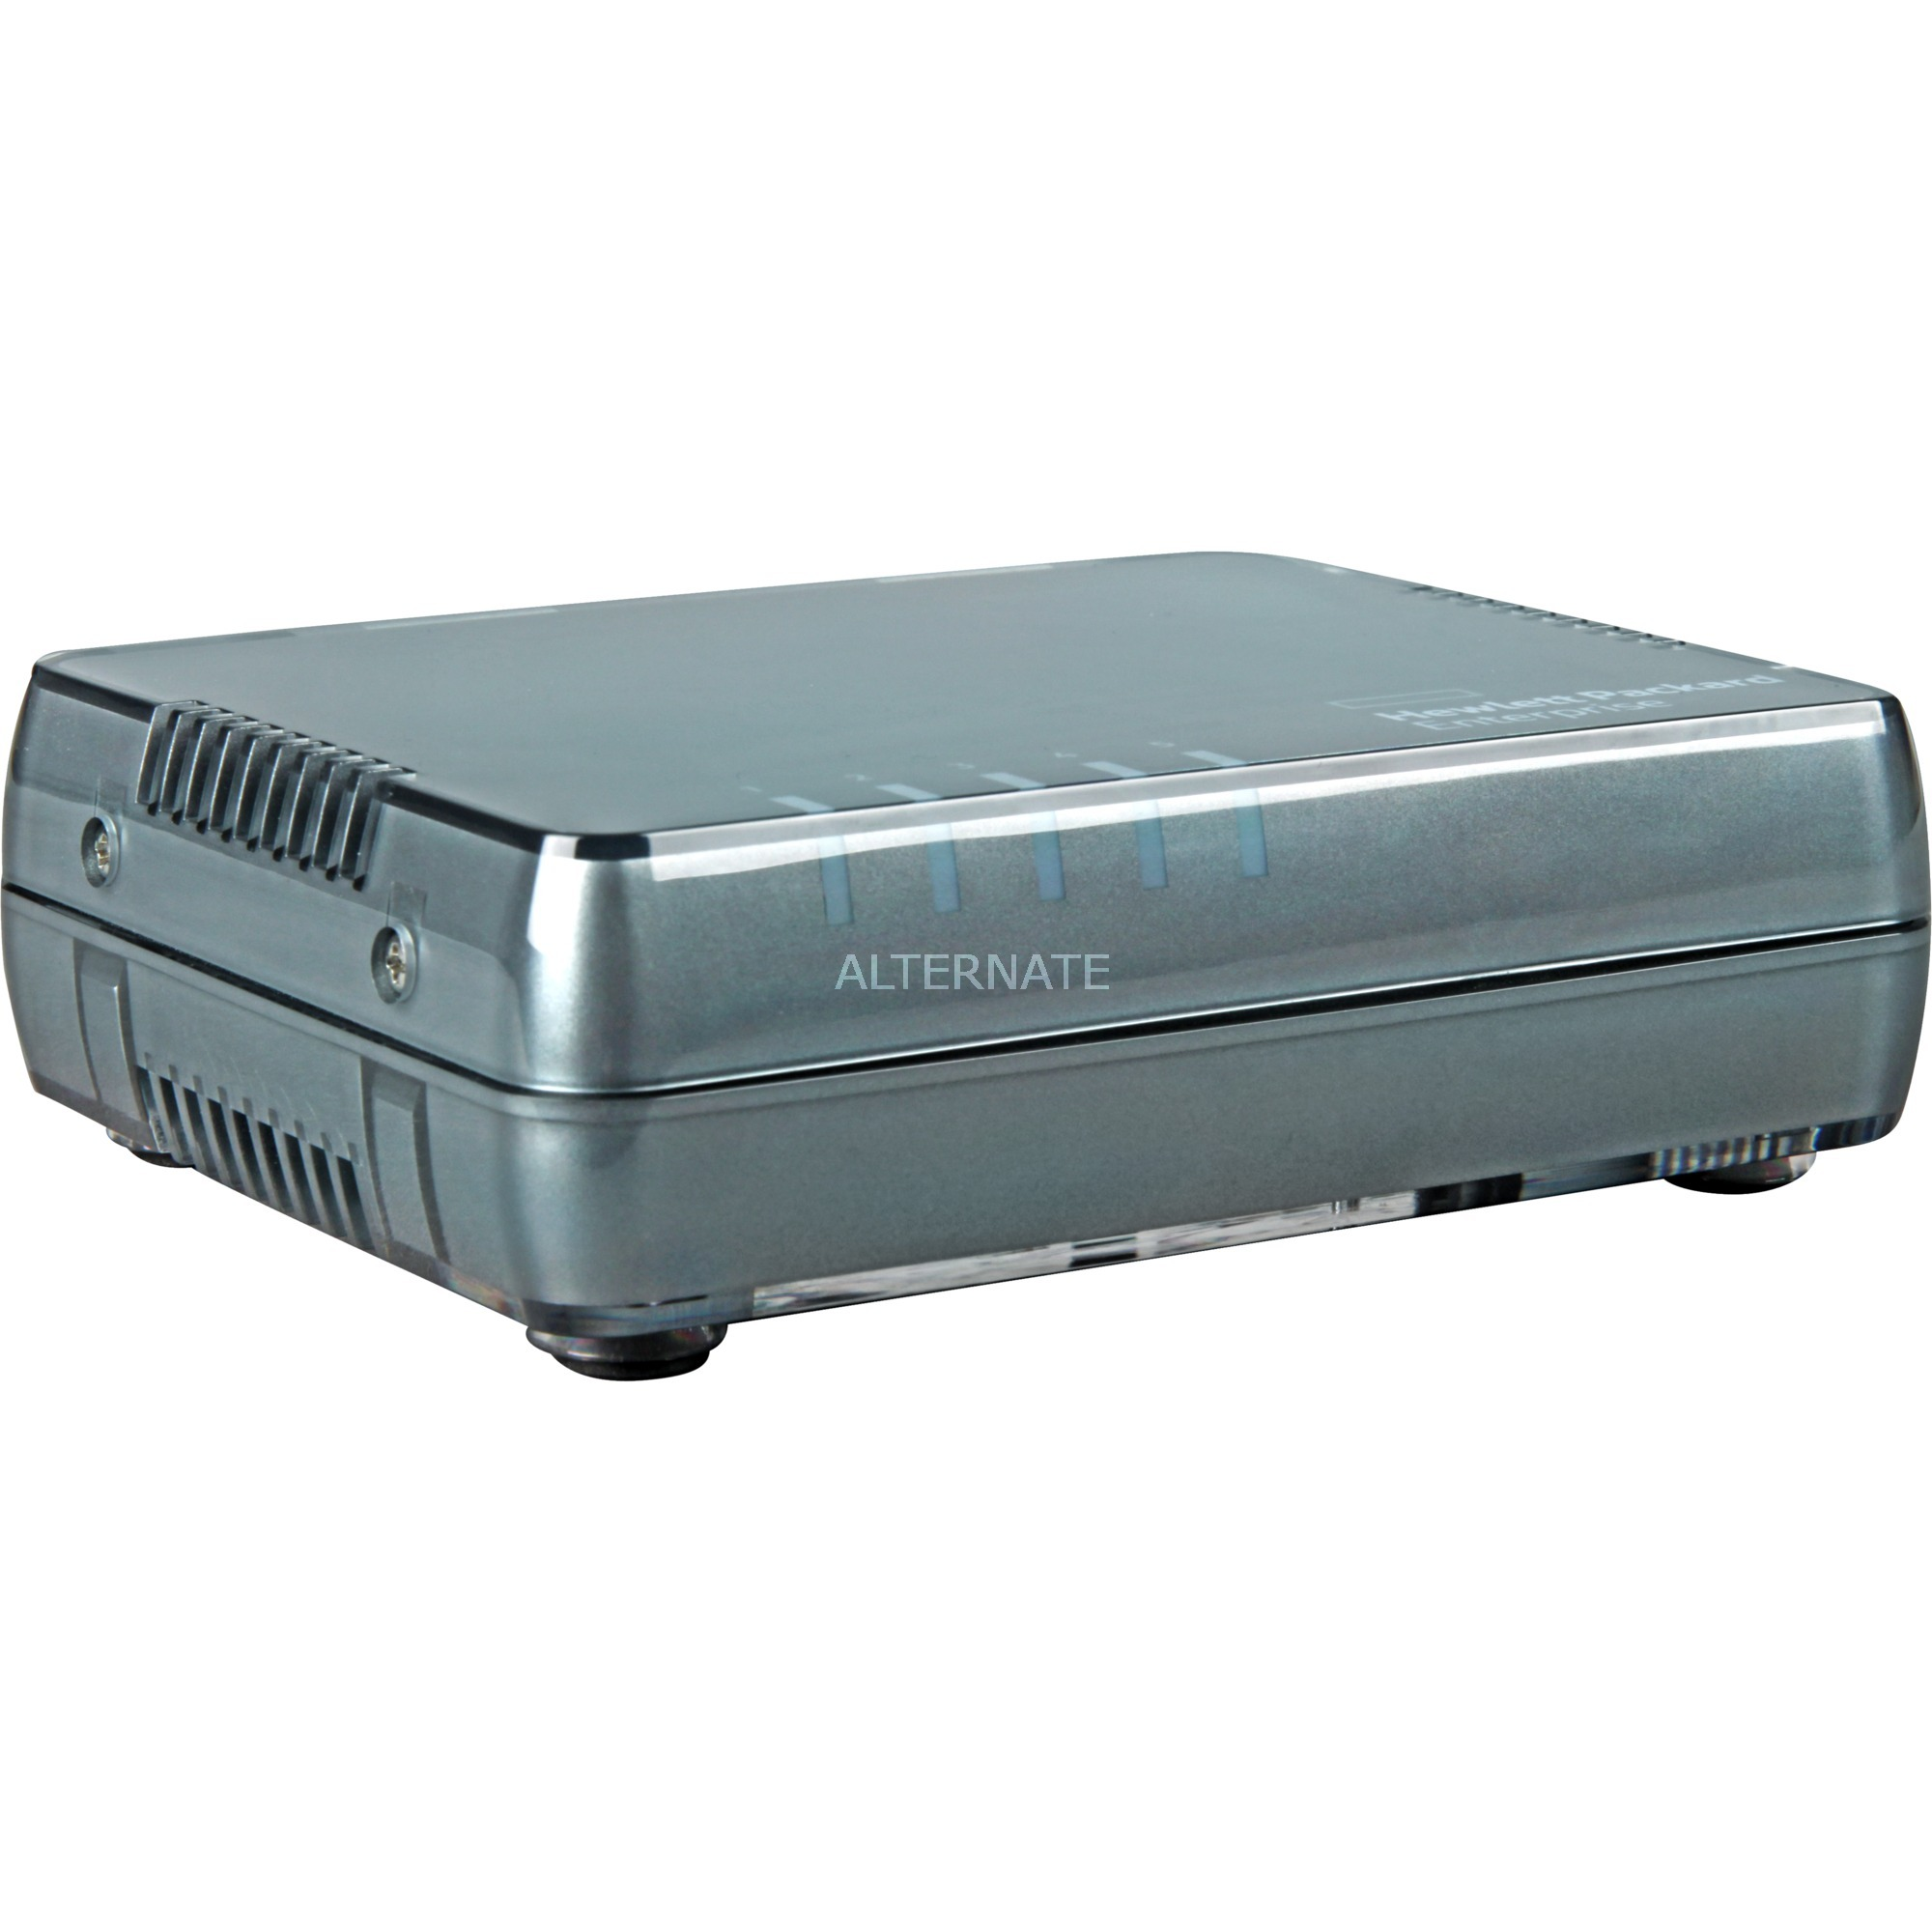 OfficeConnect 1405 5G v3 No administrado L2 Gigabit Ethernet (10/100/1000) Gris, Interruptor/Conmutador